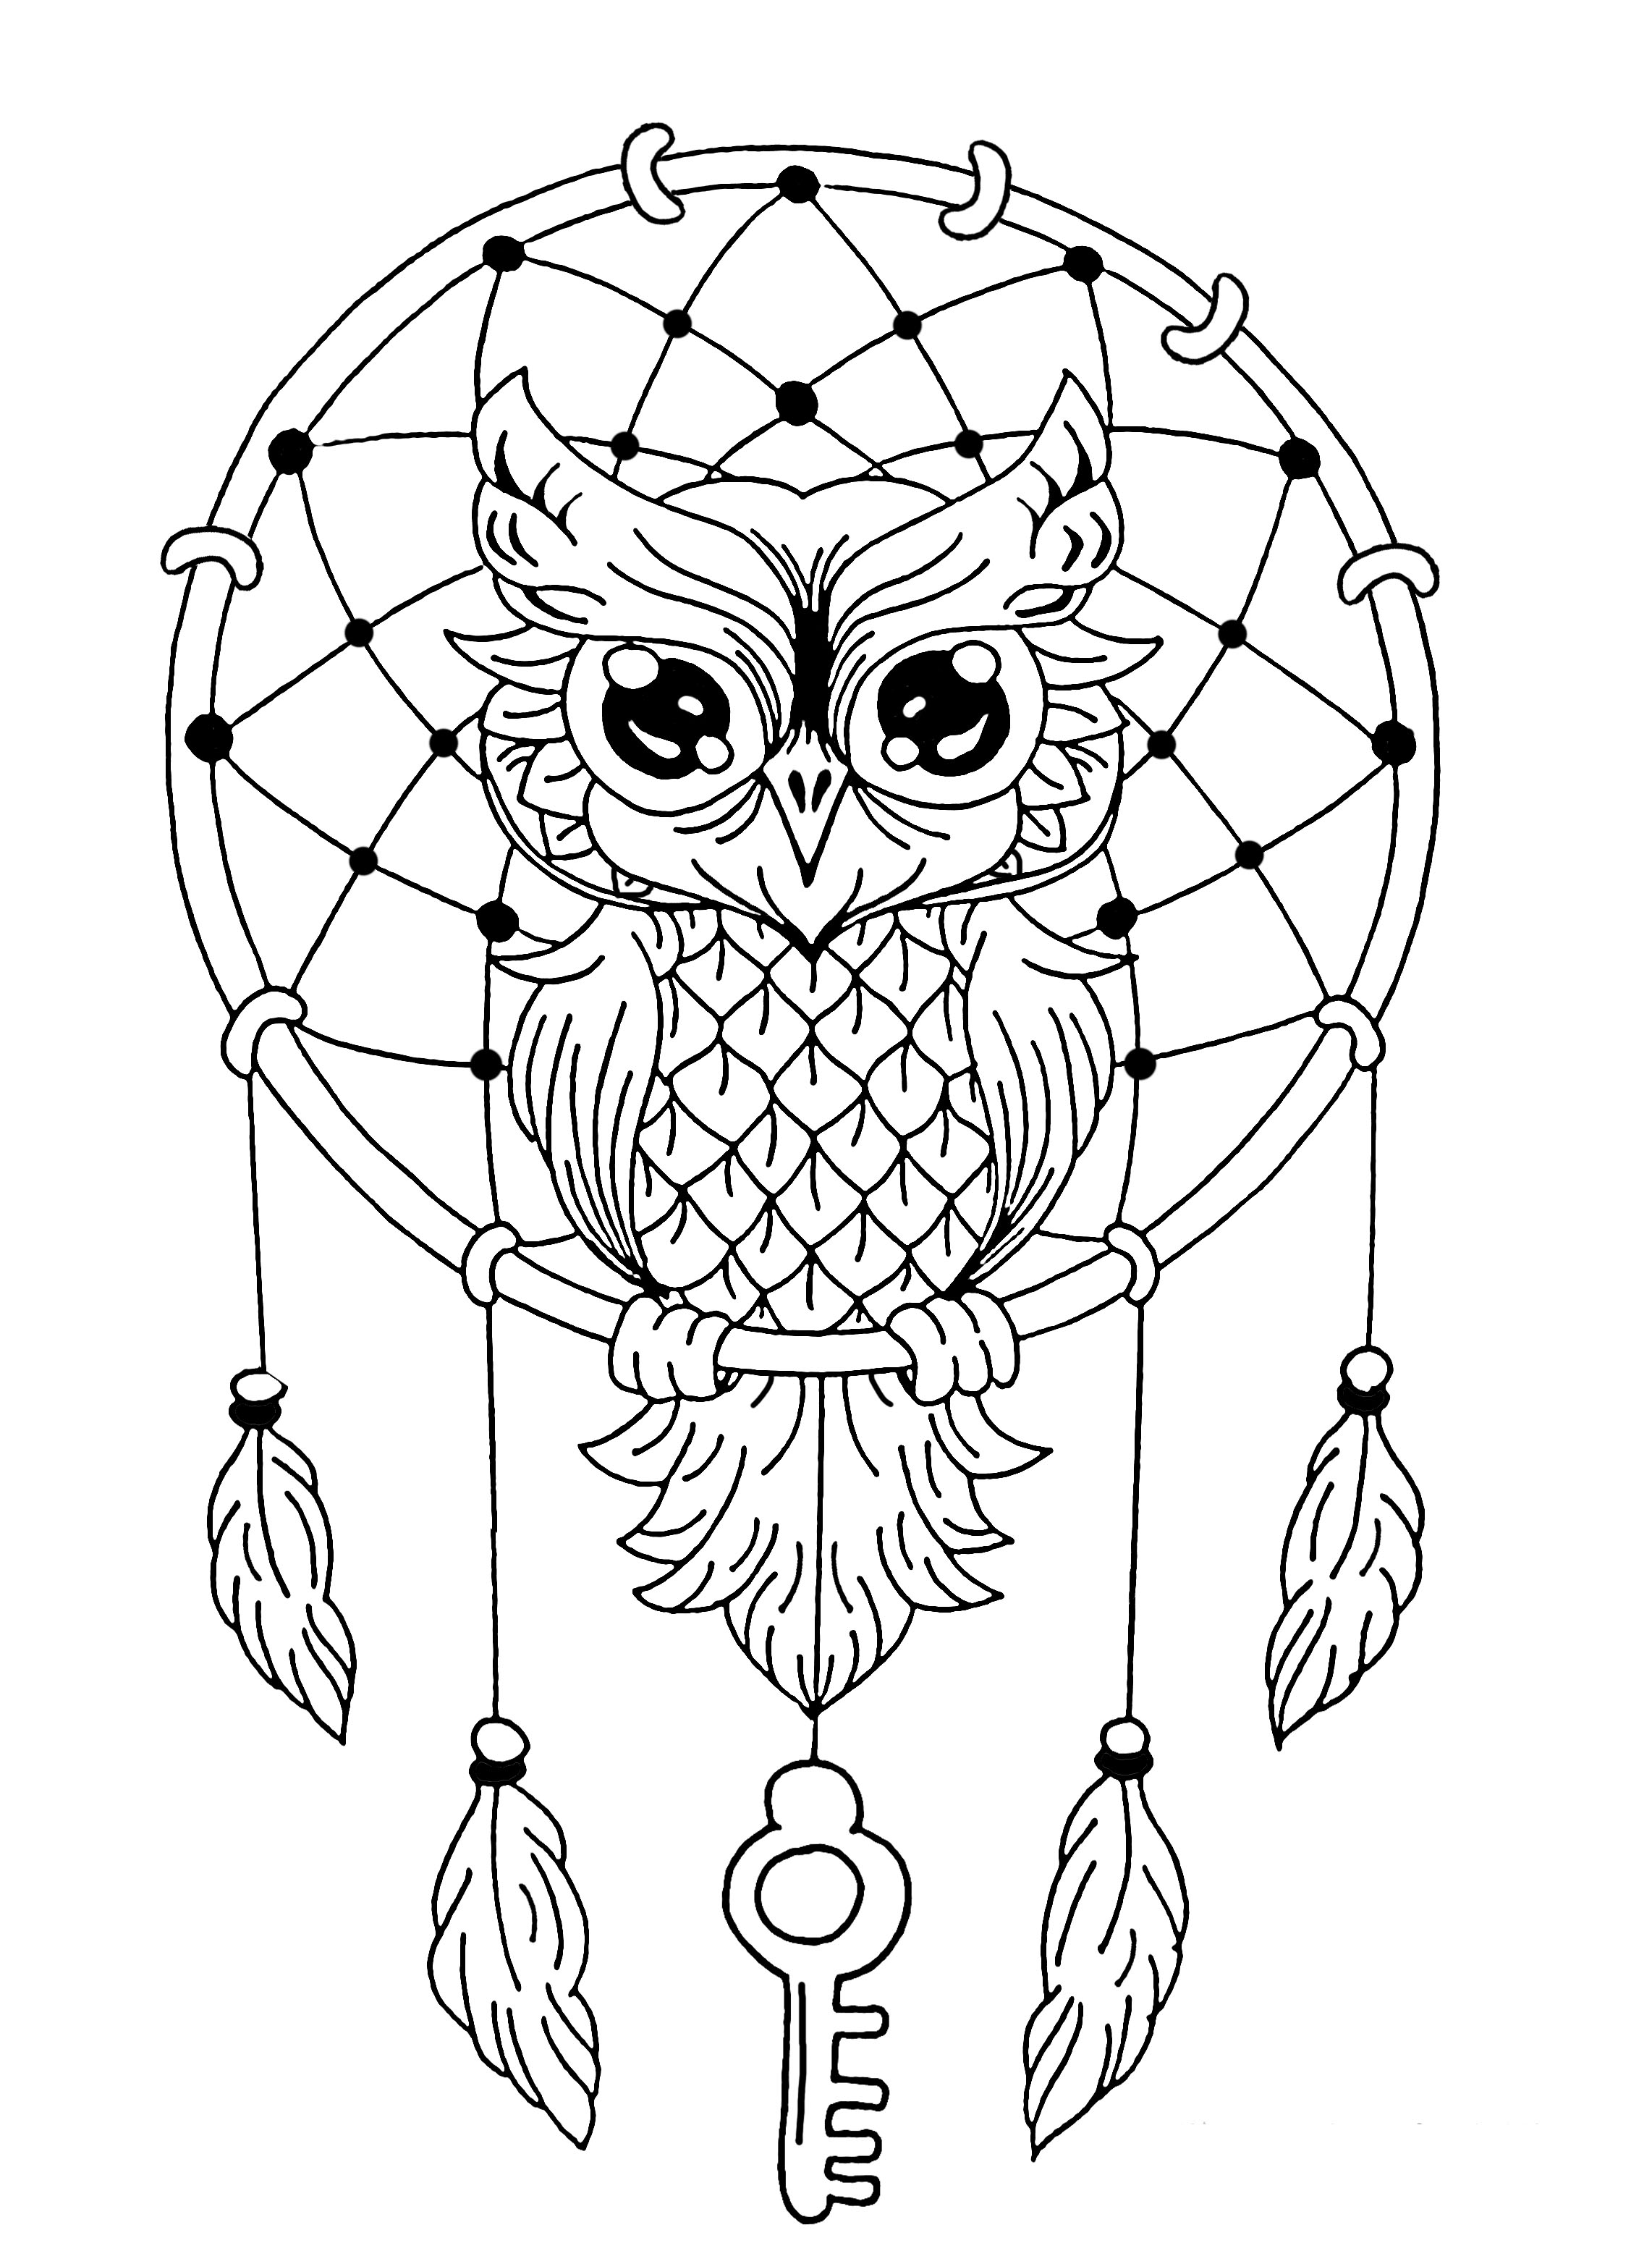 Valentine's Day printable coloring cards | Coloring pages ... | 3099x2283